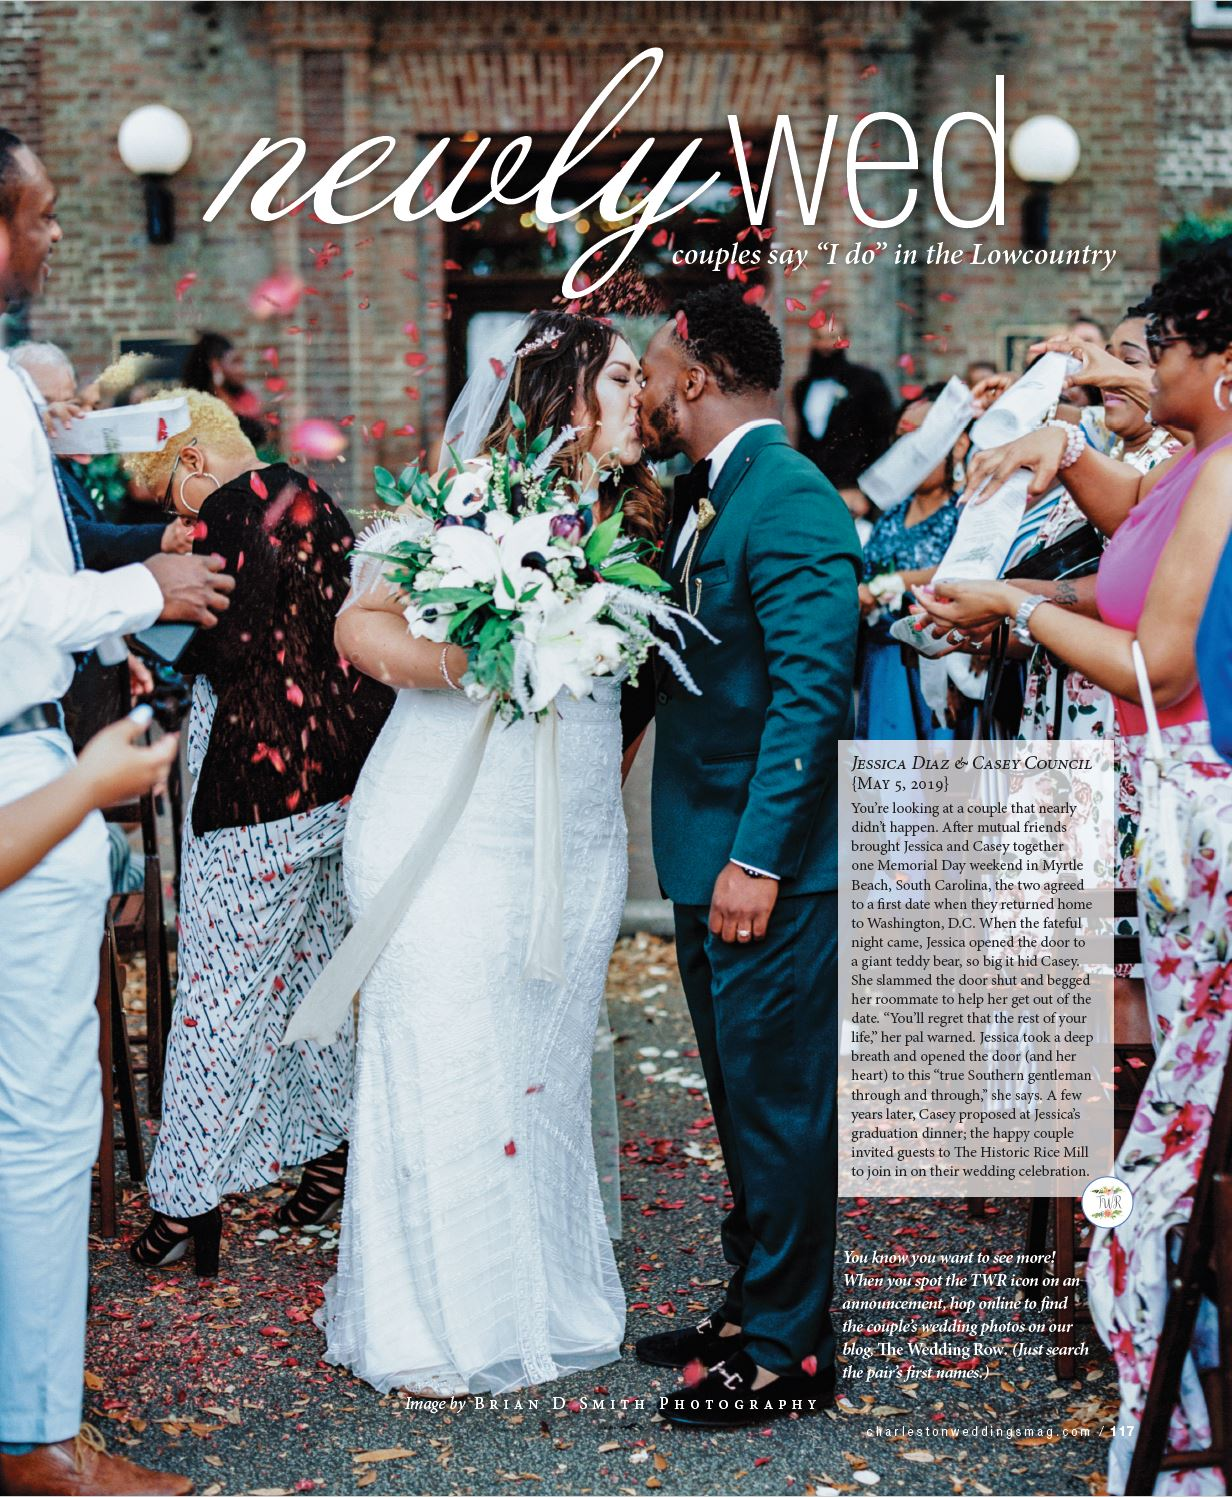 charleston weddings magazine winter 2019 jessica casey may rice mill wedding announcement flower petal wedding ceremony recessional